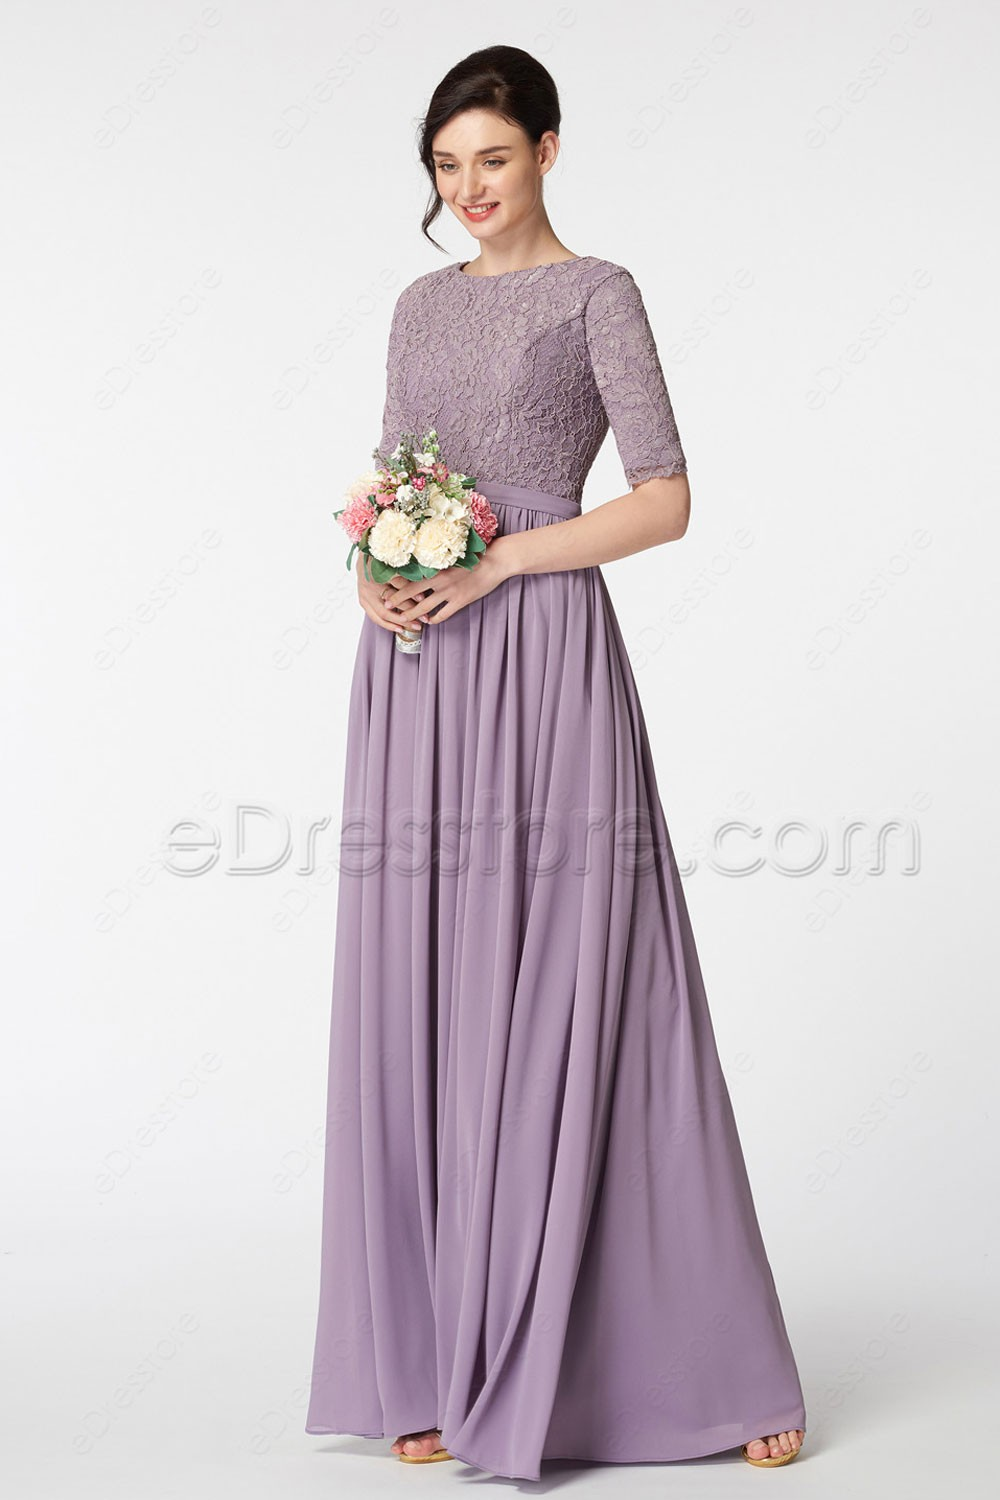 Modest lace coral bridesmaid dresses with sleeves wisteria purple modest bridesmaid dress with elbow sleeves ombrellifo Choice Image